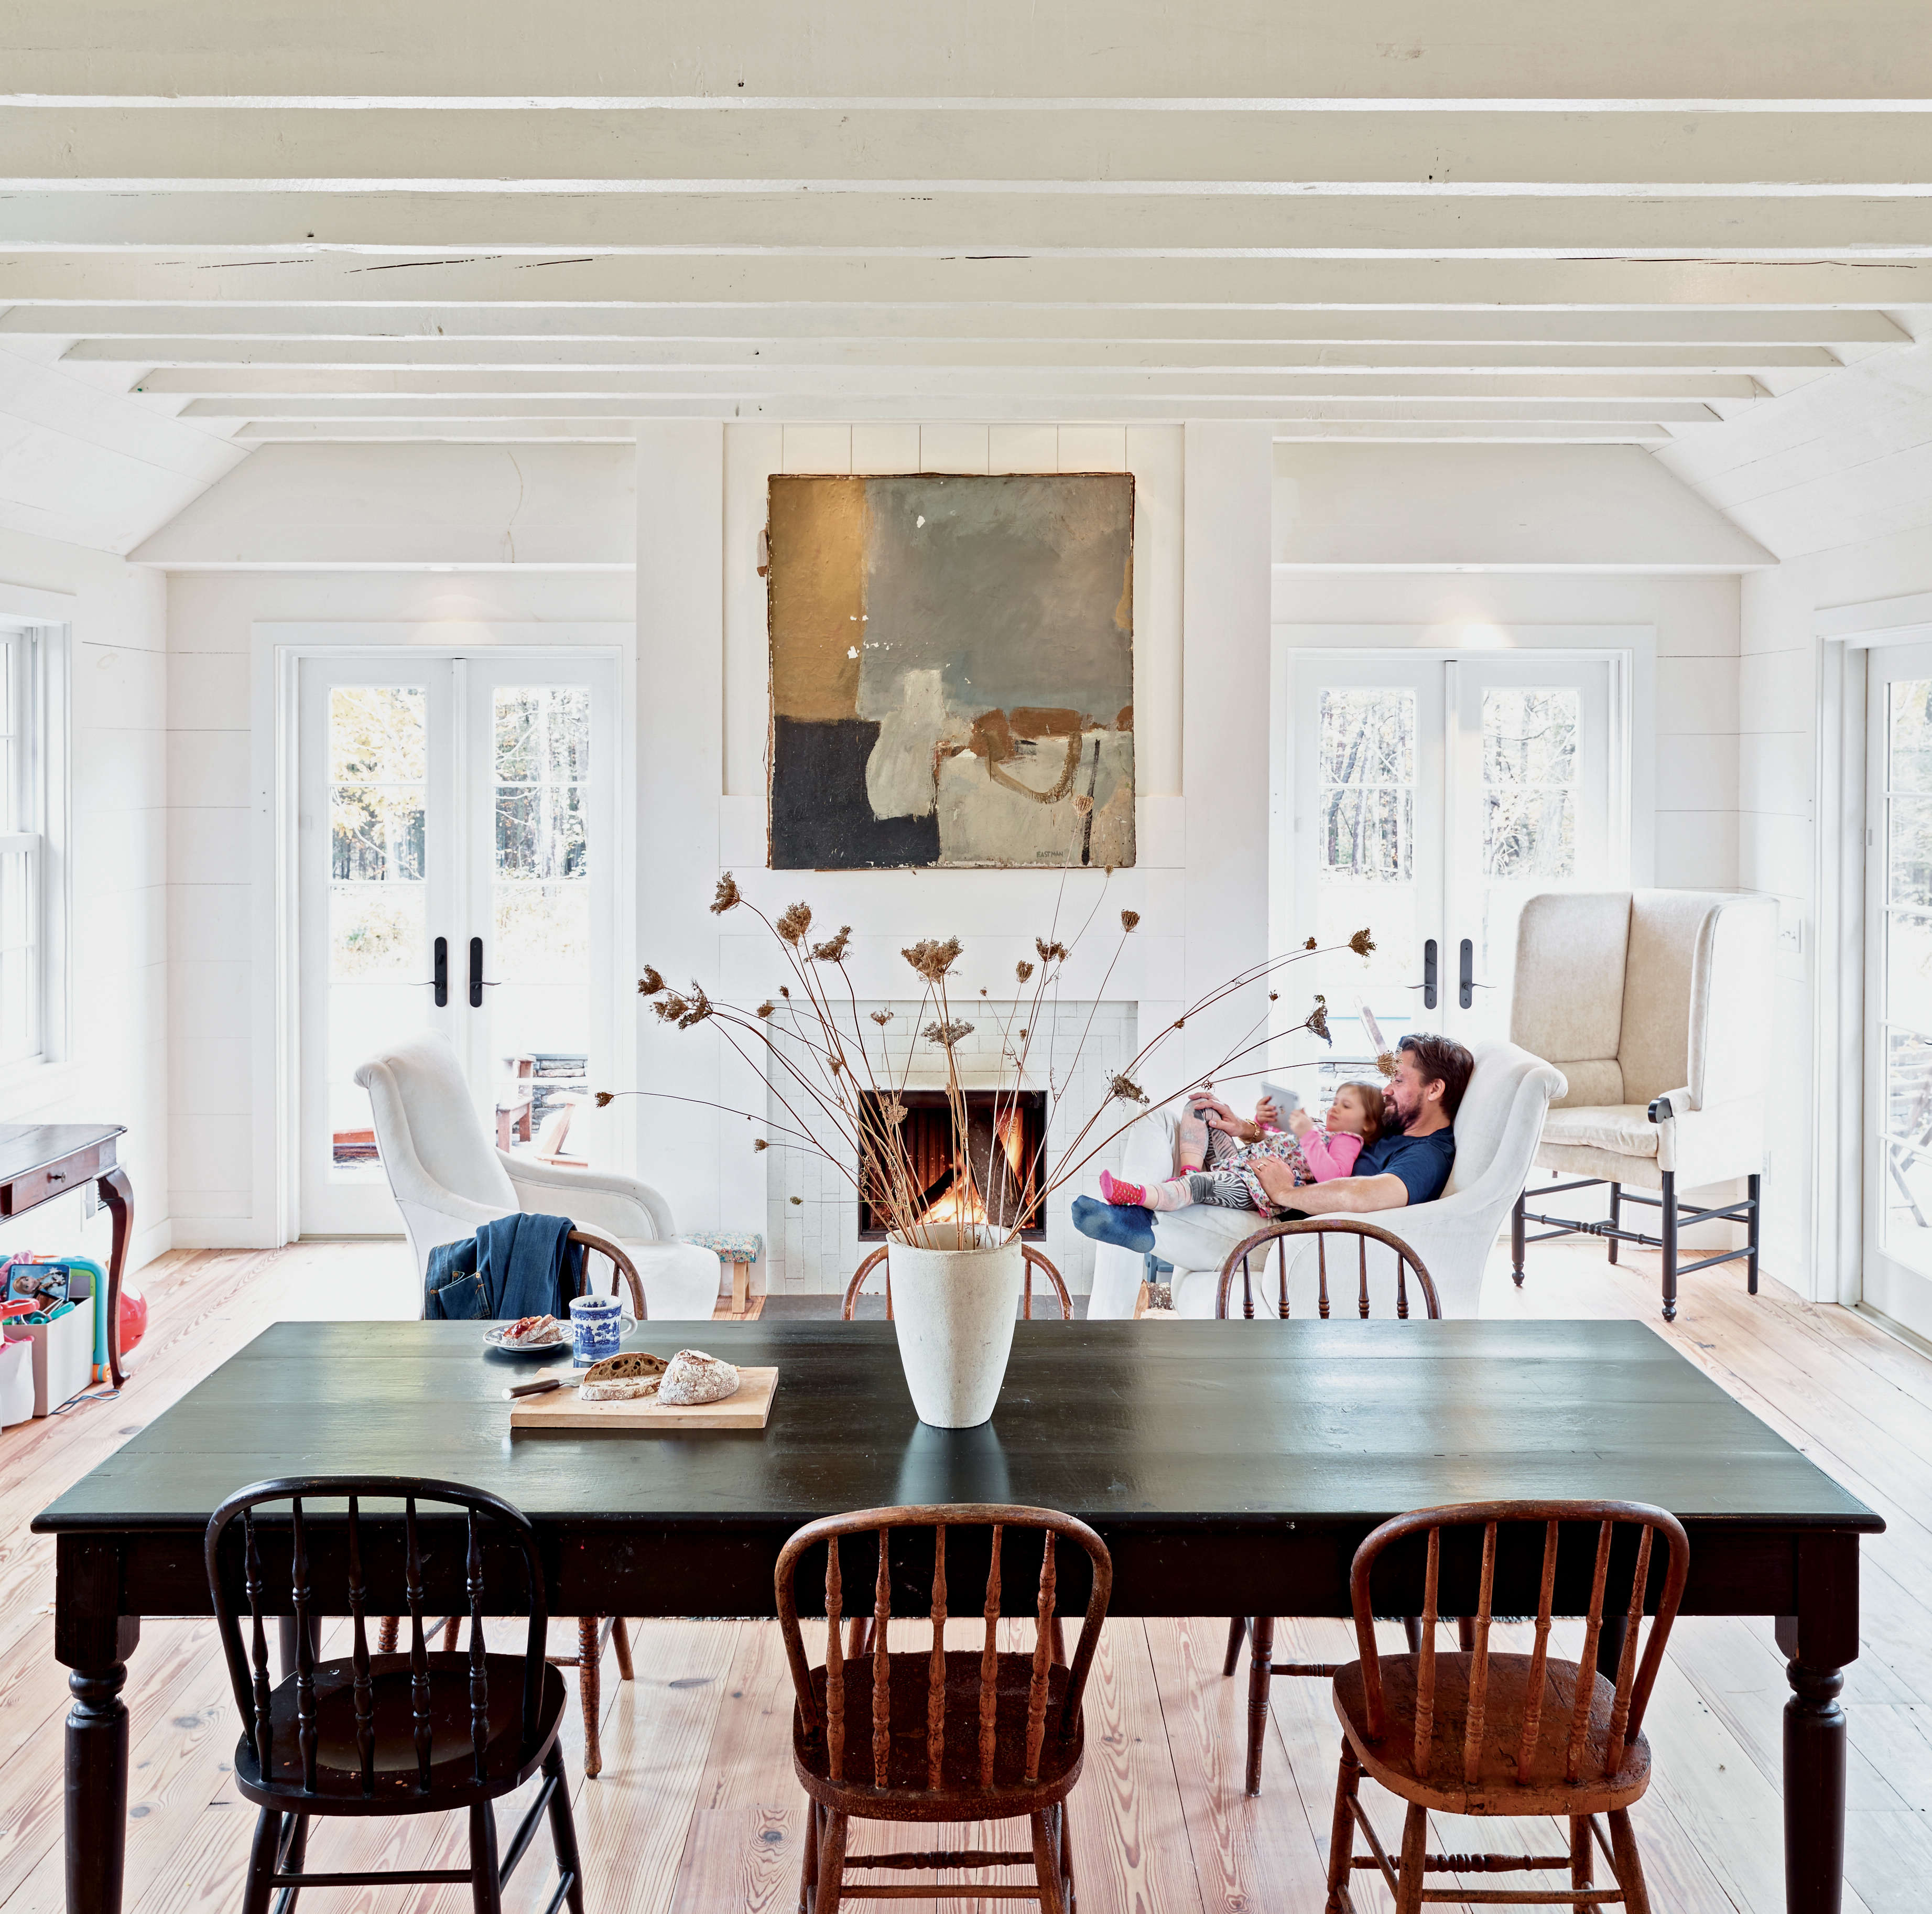 Taavo Somer Dining Room Upstate from Freeman's Book